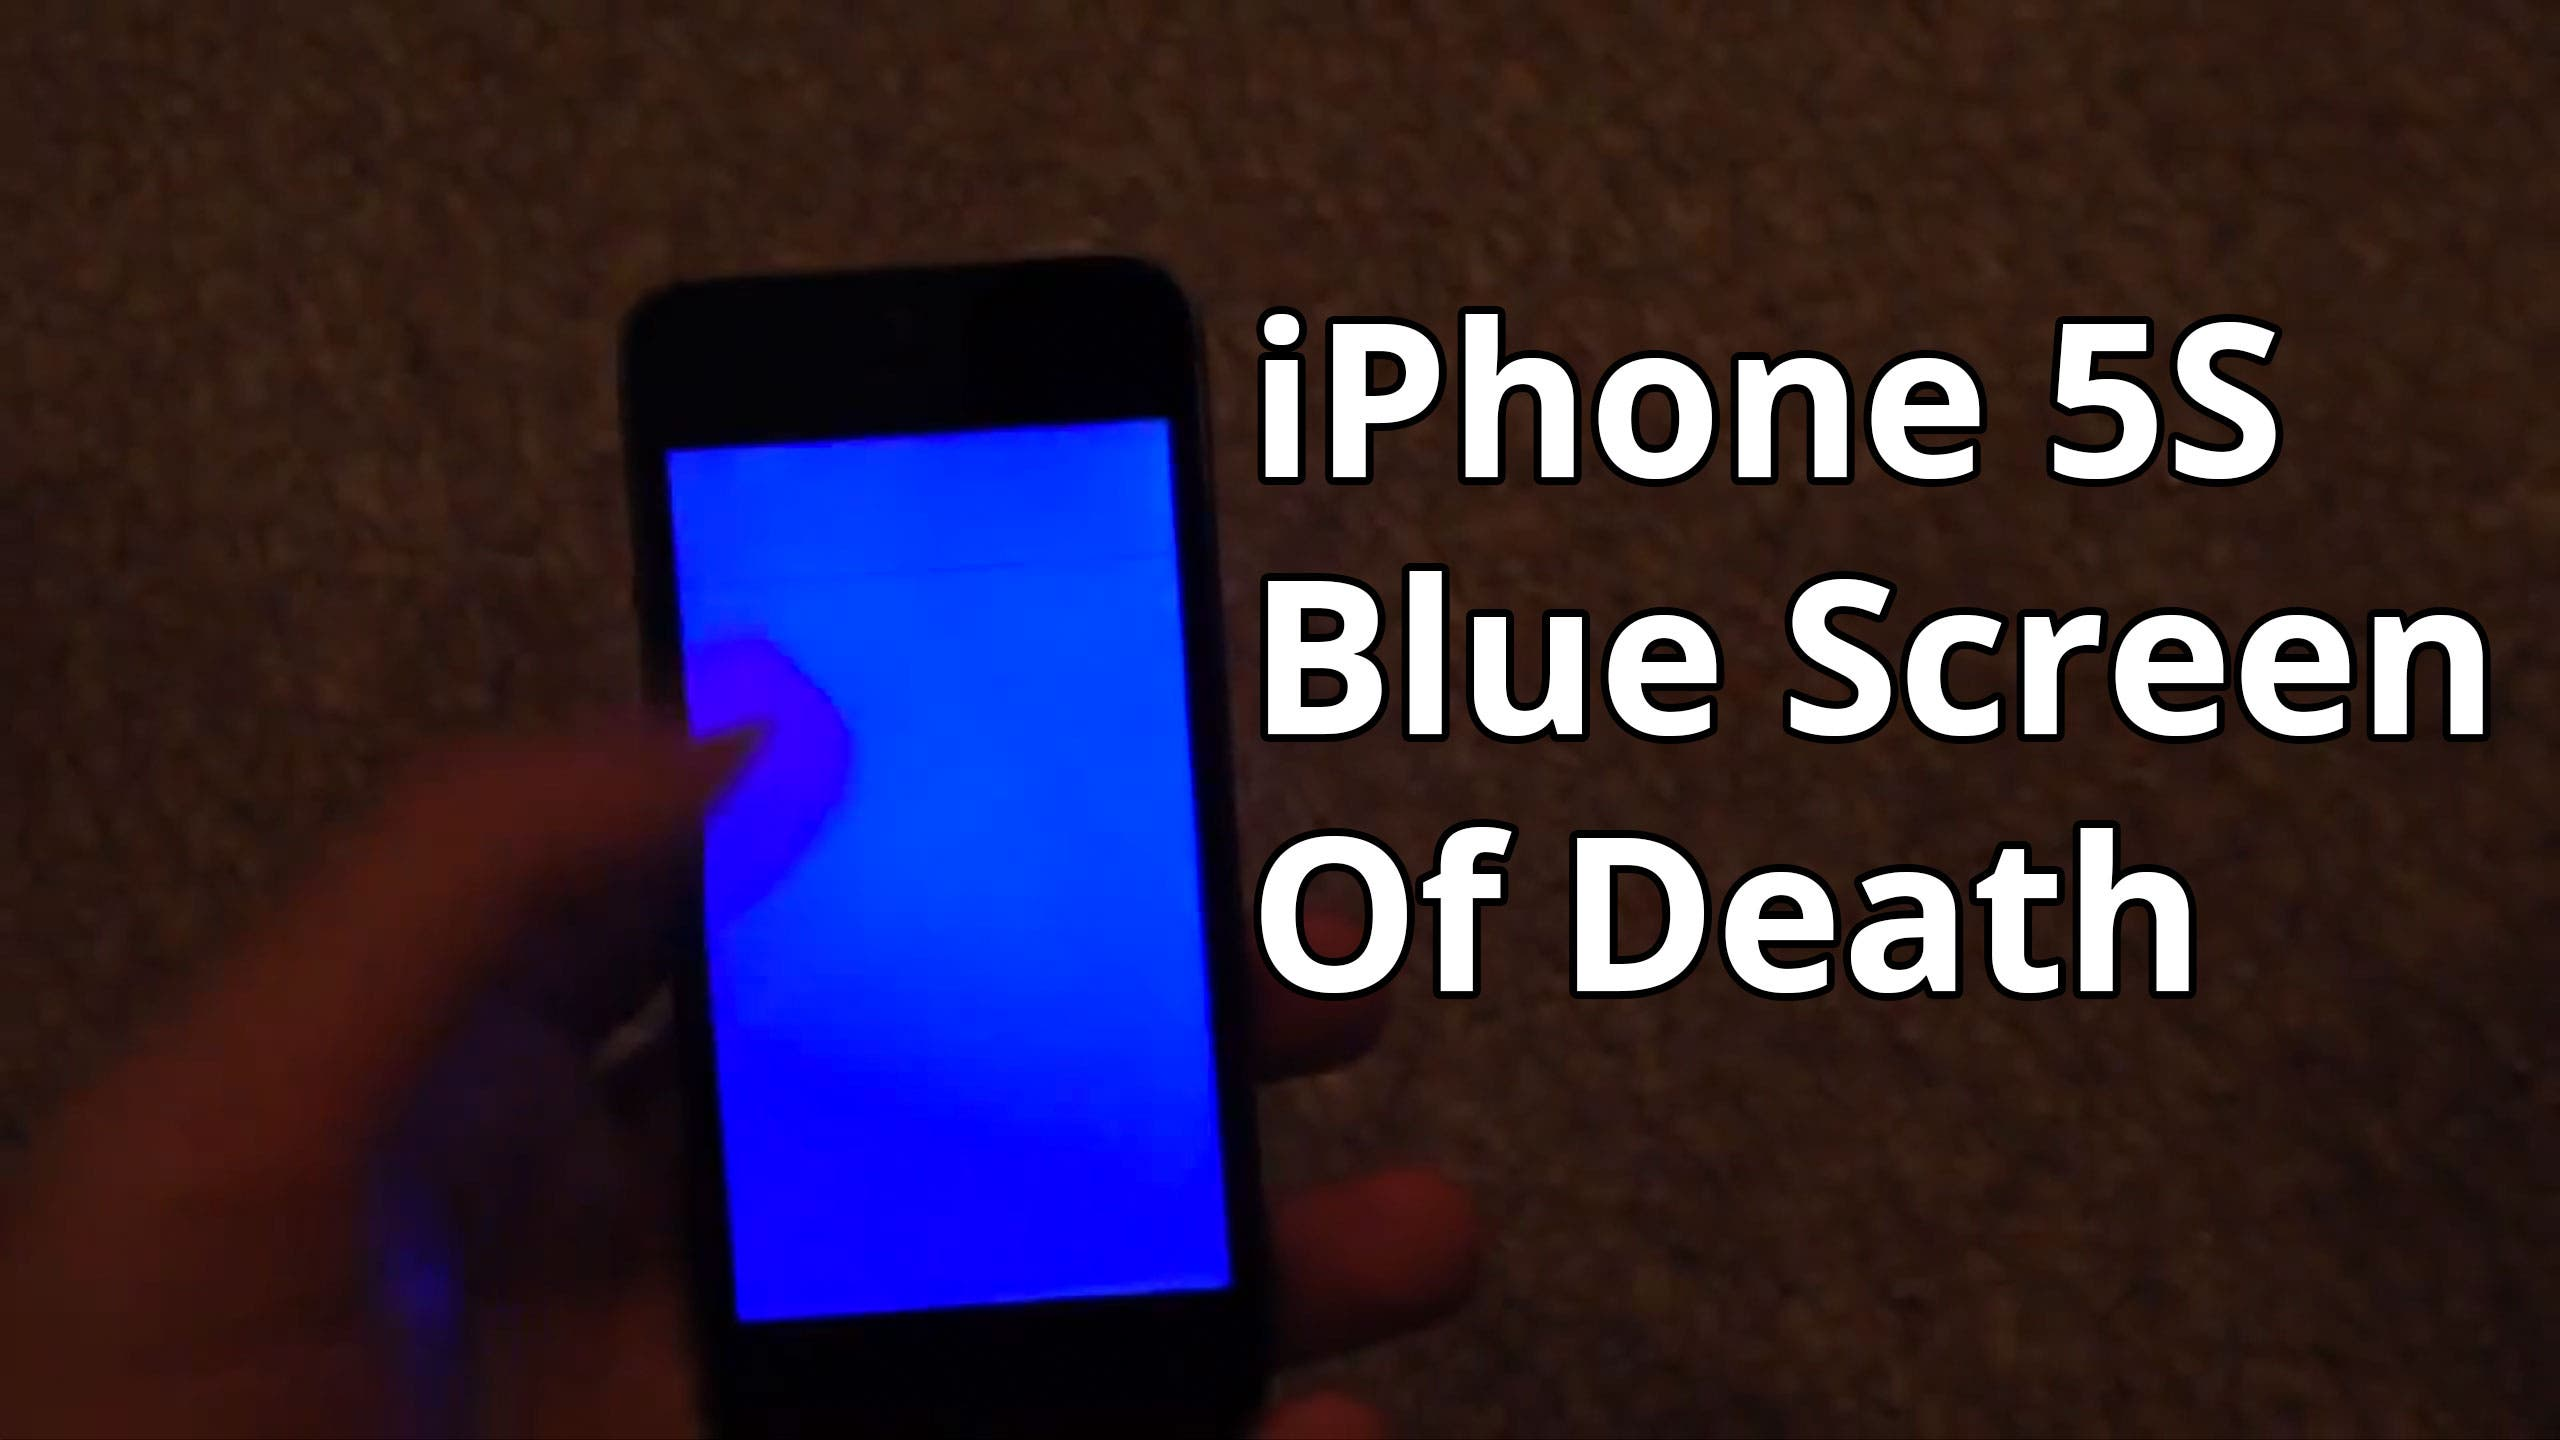 iPhone 5S: Blue Screen Of Death